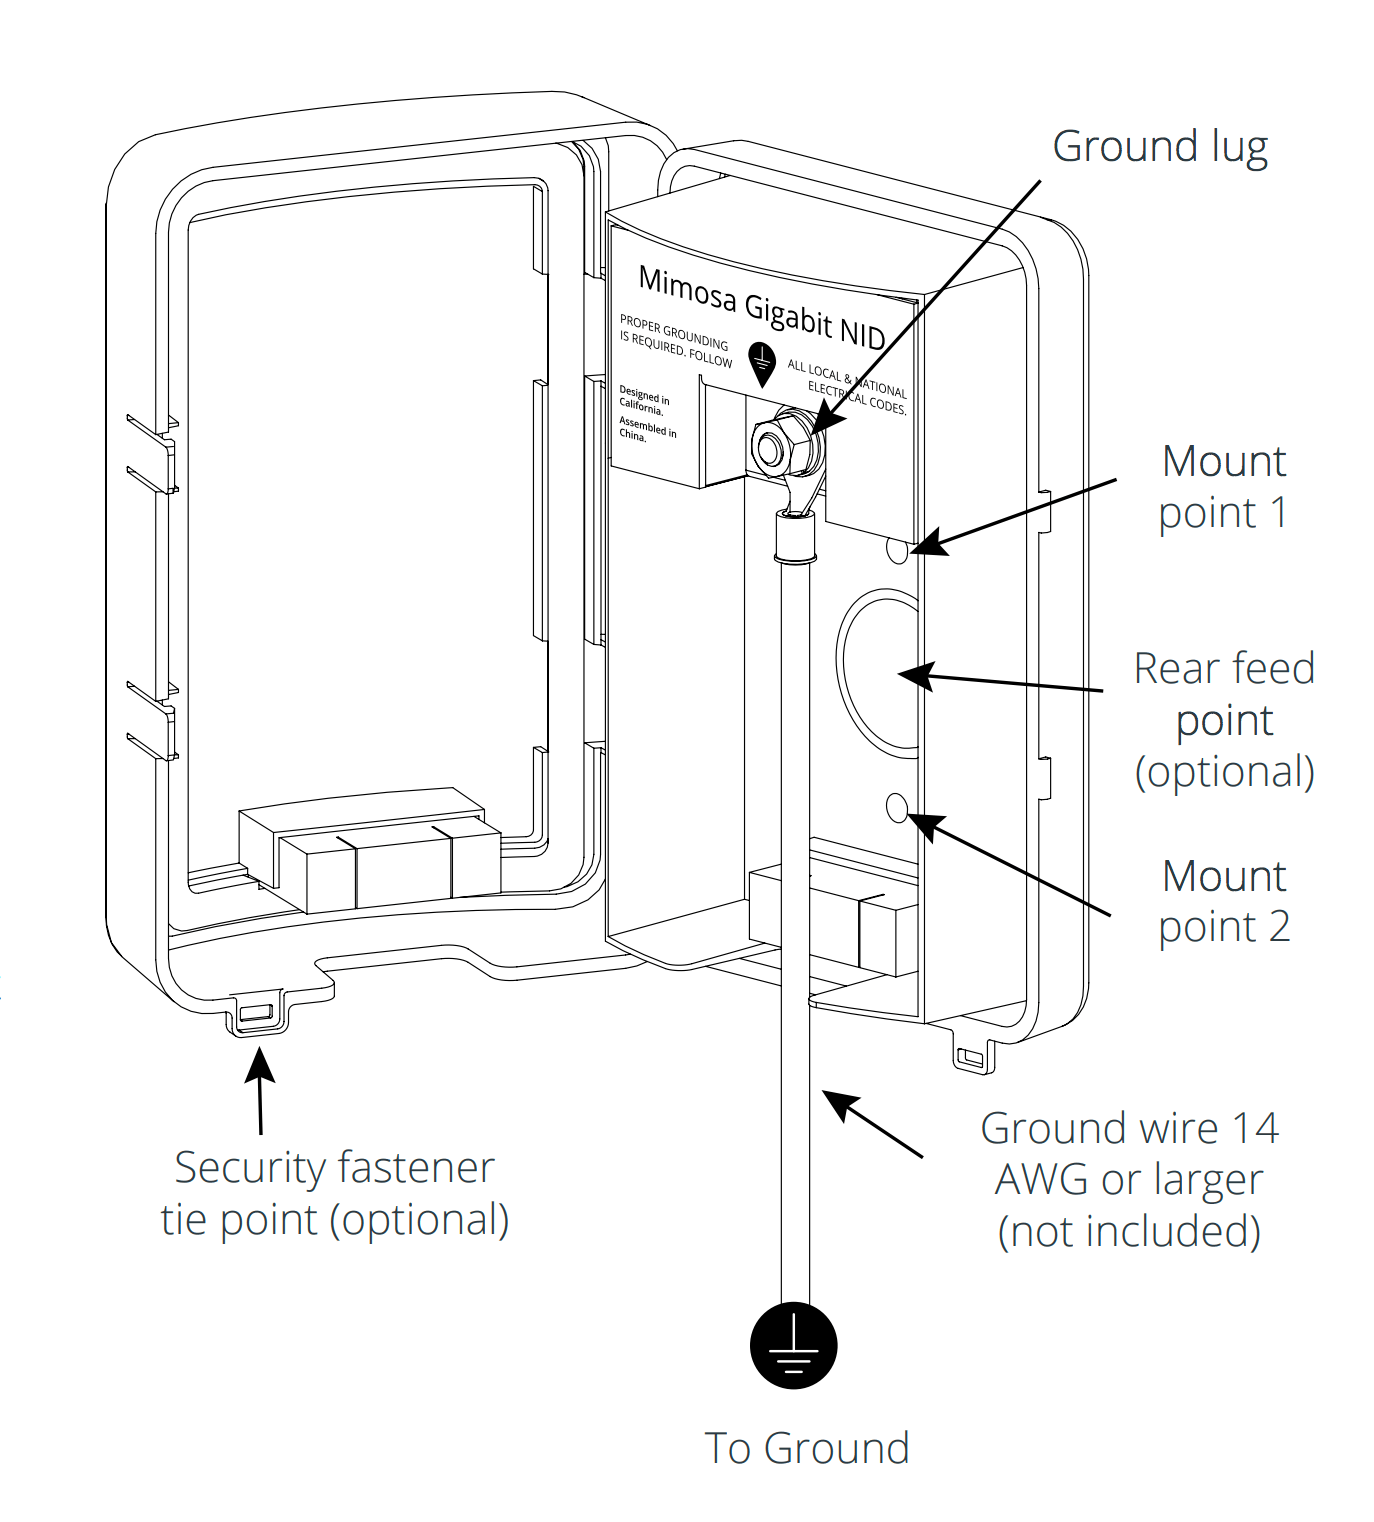 outdoor technician access esd protection and grounding point easy to install technician physical access interface with surge supression and grounding  [ 1374 x 1522 Pixel ]